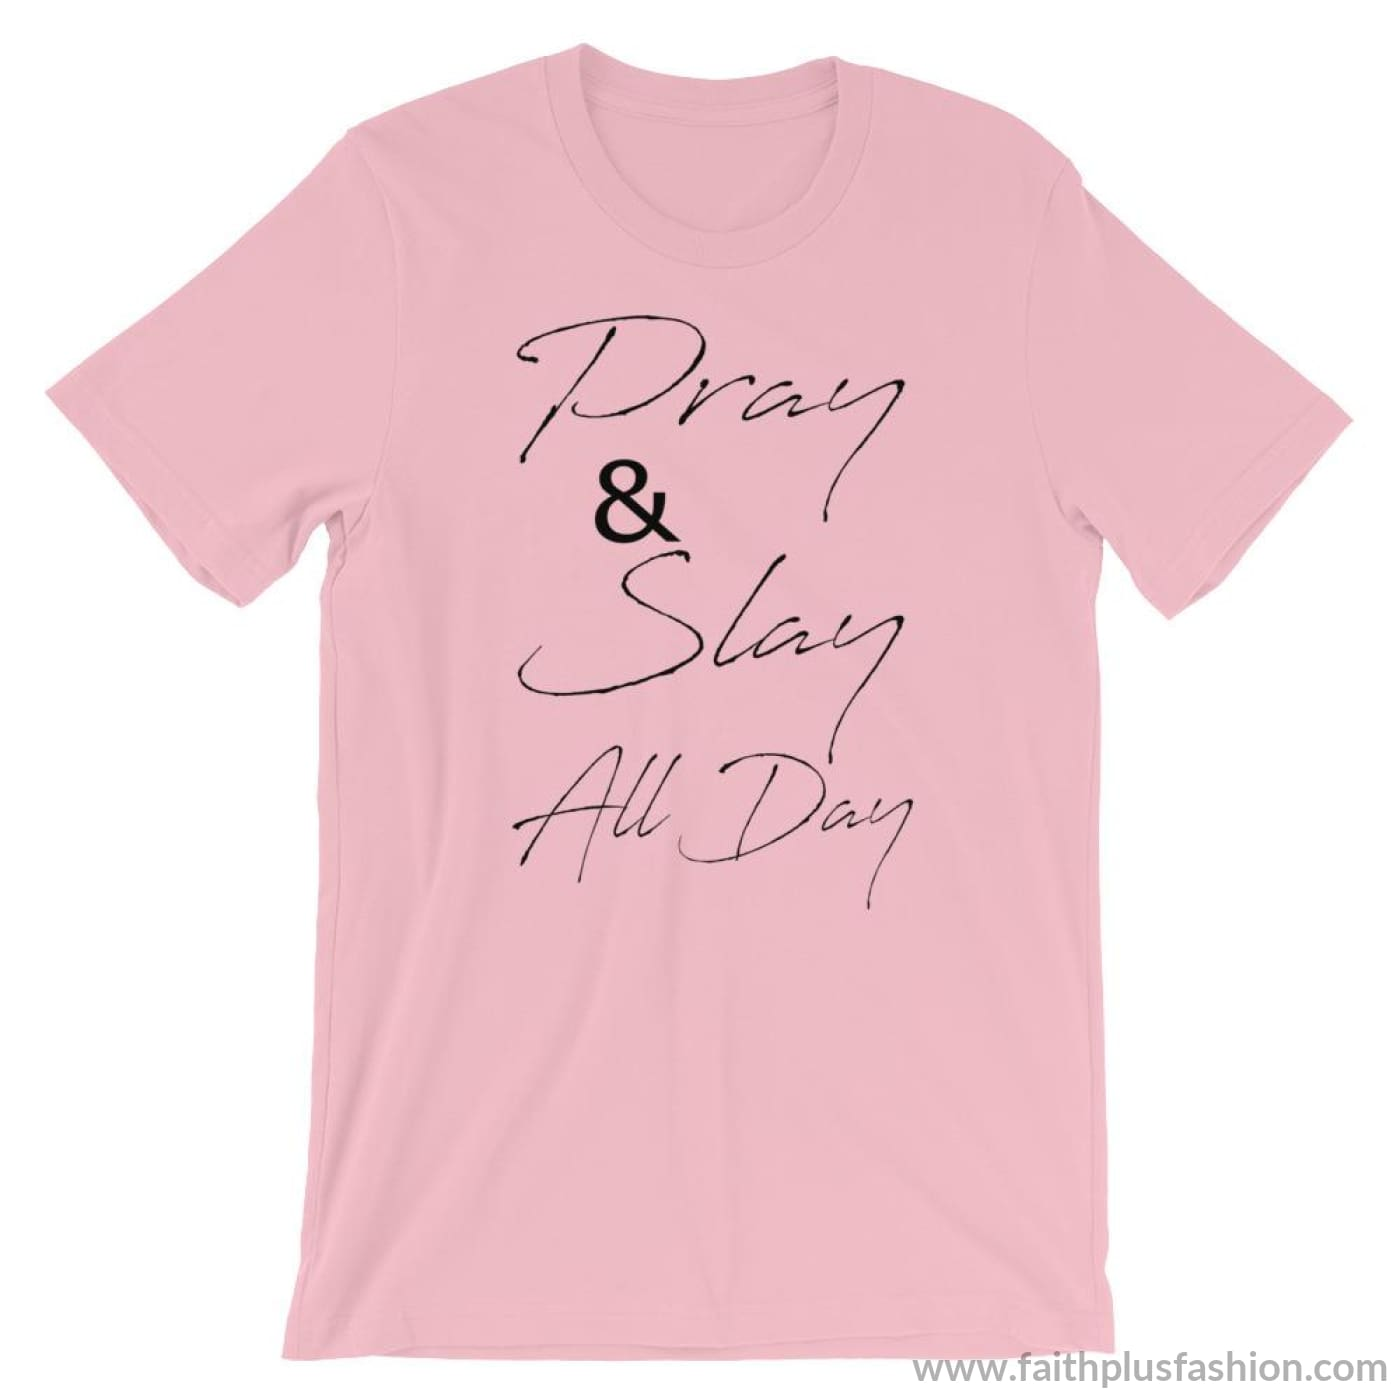 Pray & Slay All Day Short-Sleeve Unisex T-Shirt - Pink / S - T-Shirt